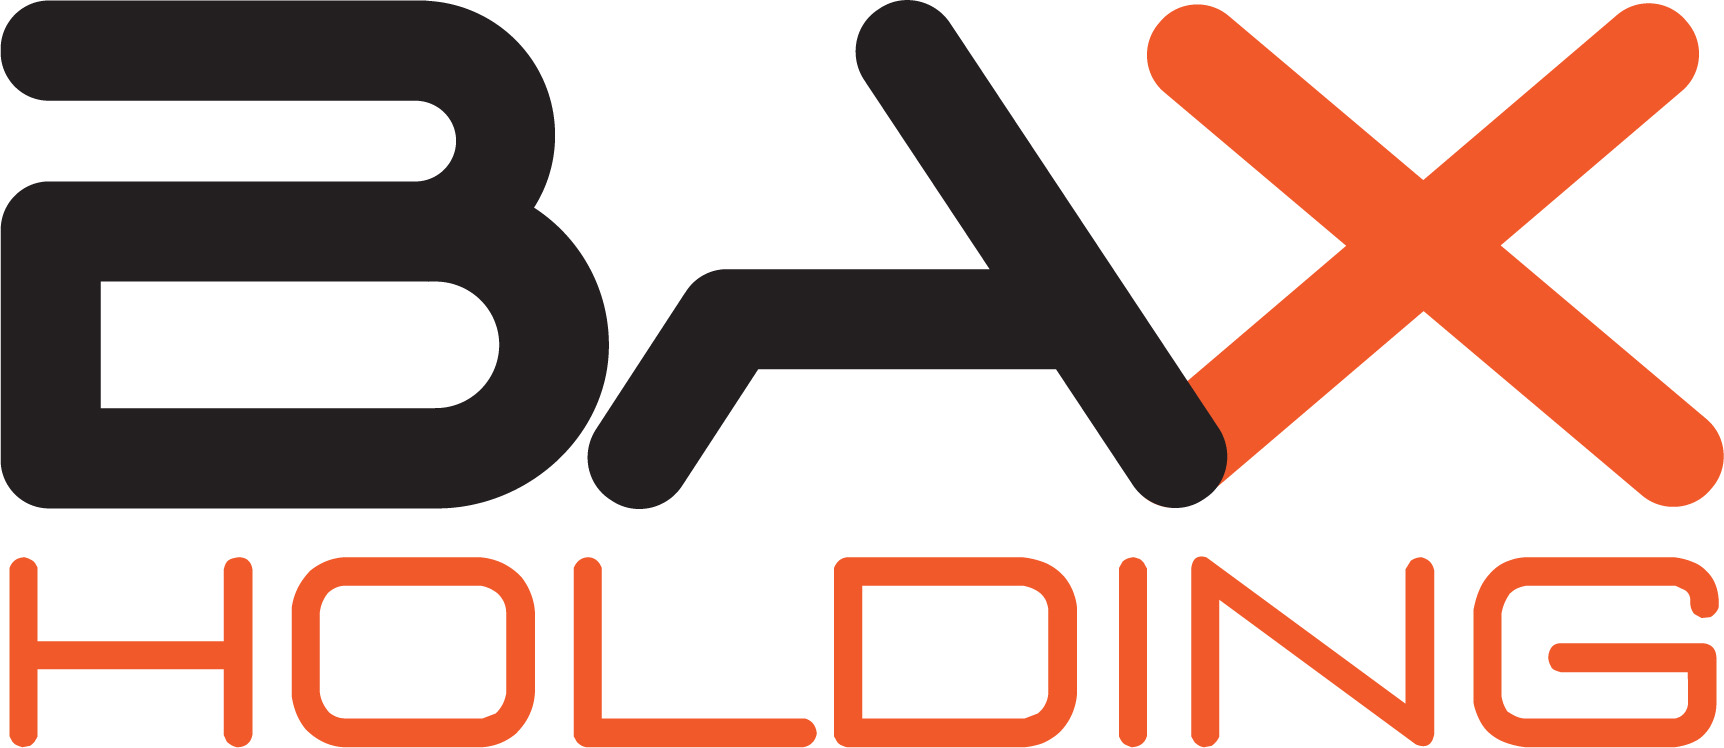 Bax holding